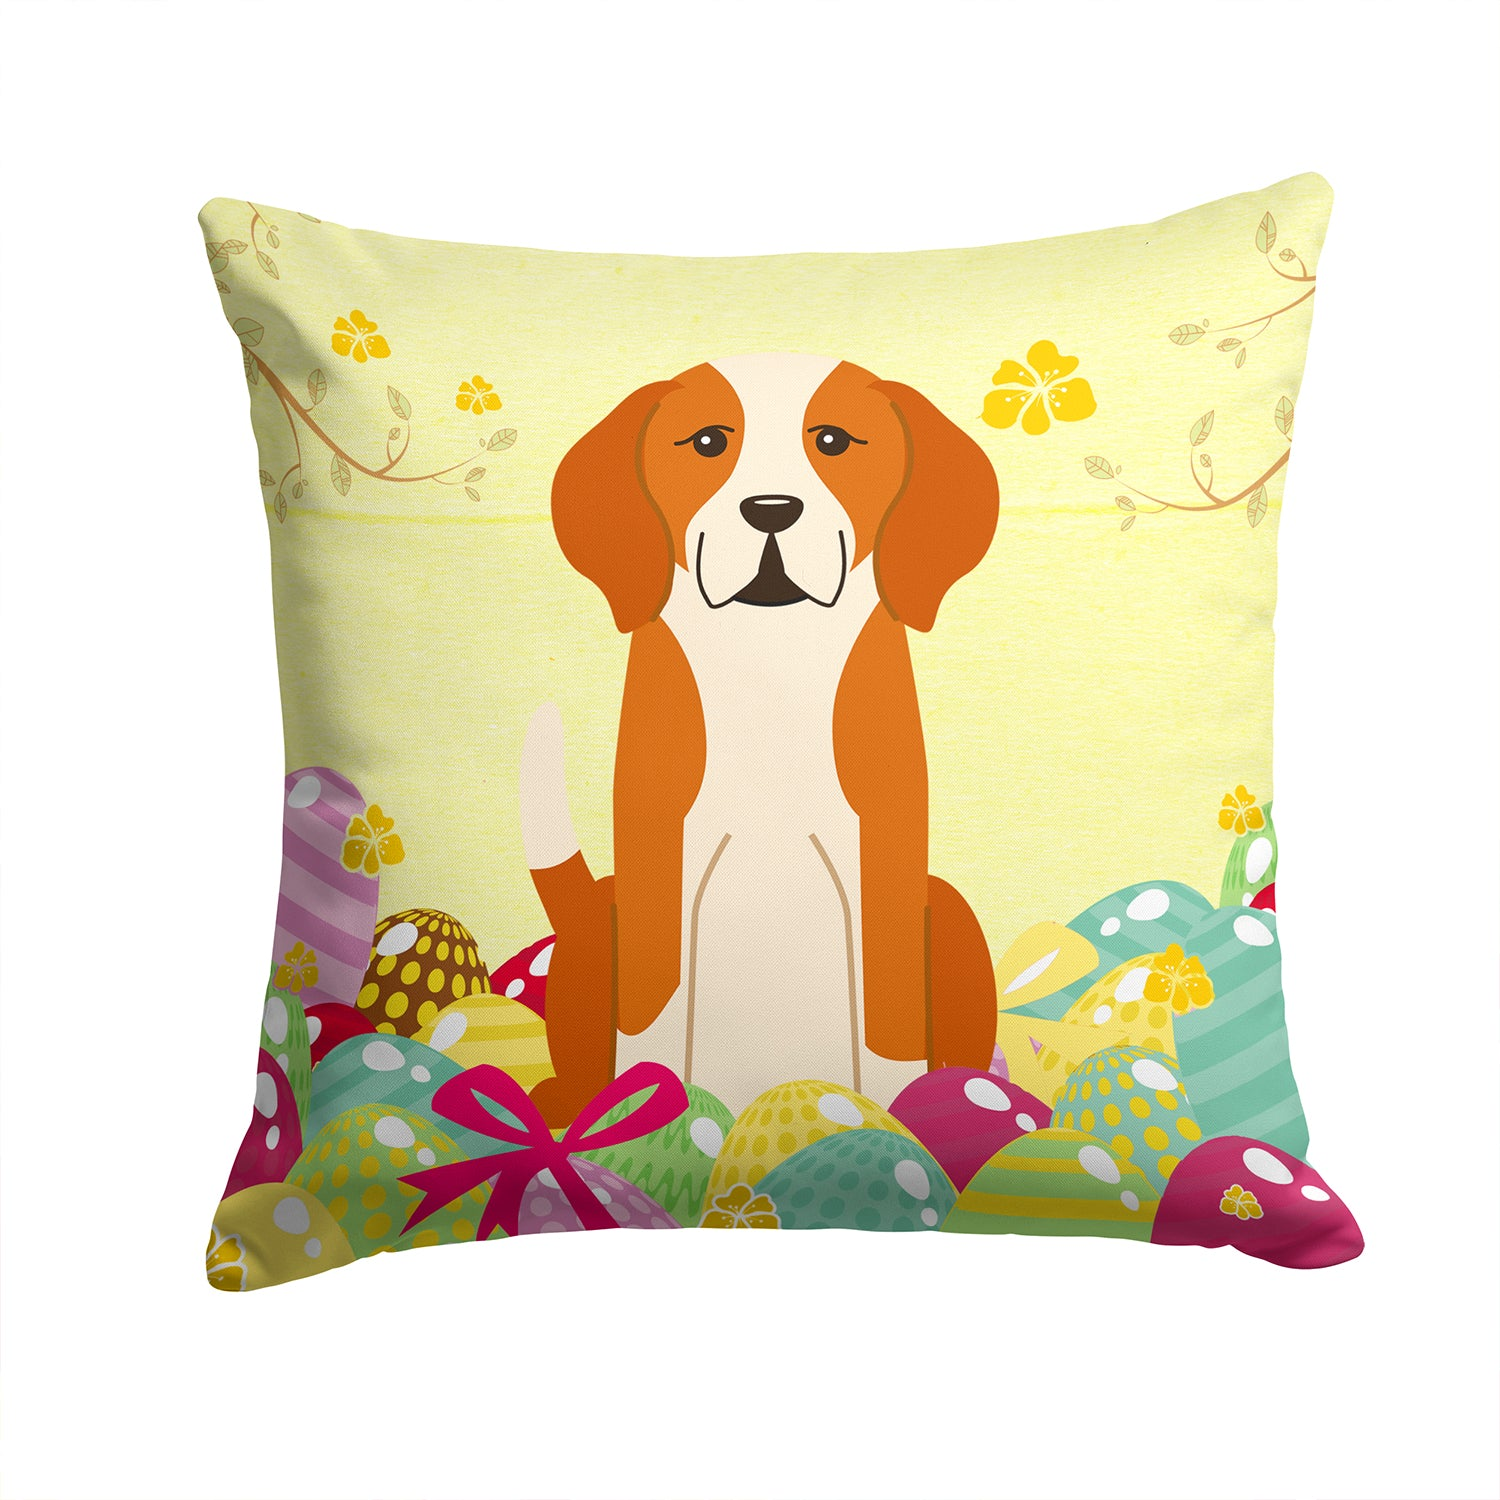 Easter Eggs English Foxhound Fabric Decorative Pillow BB6110PW1414 by Caroline's Treasures